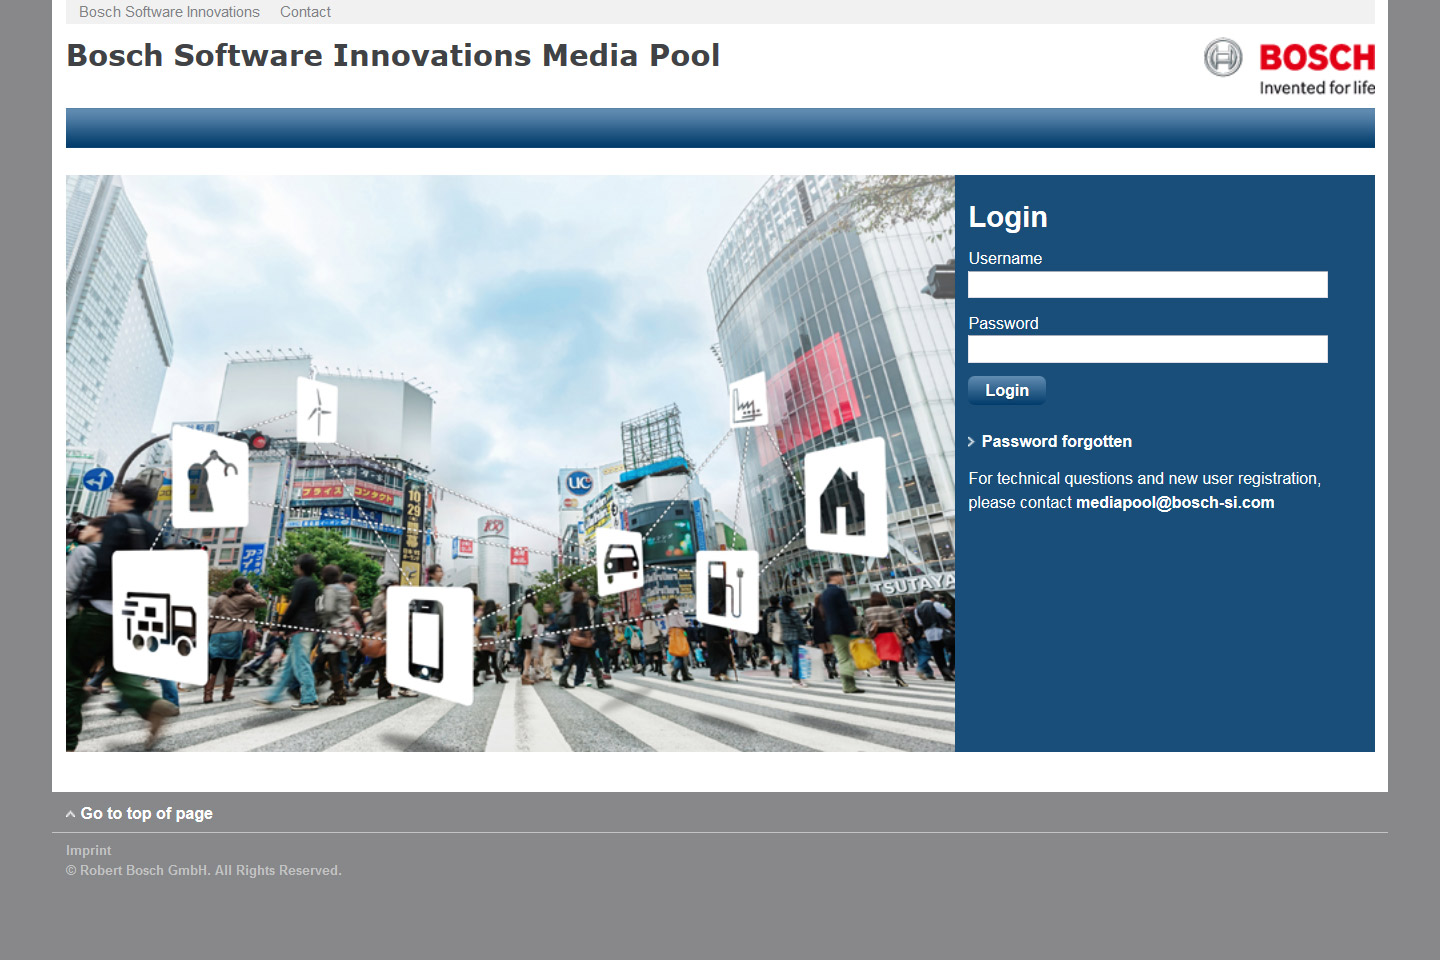 Bosch Software Innovations - Media Pool Detail